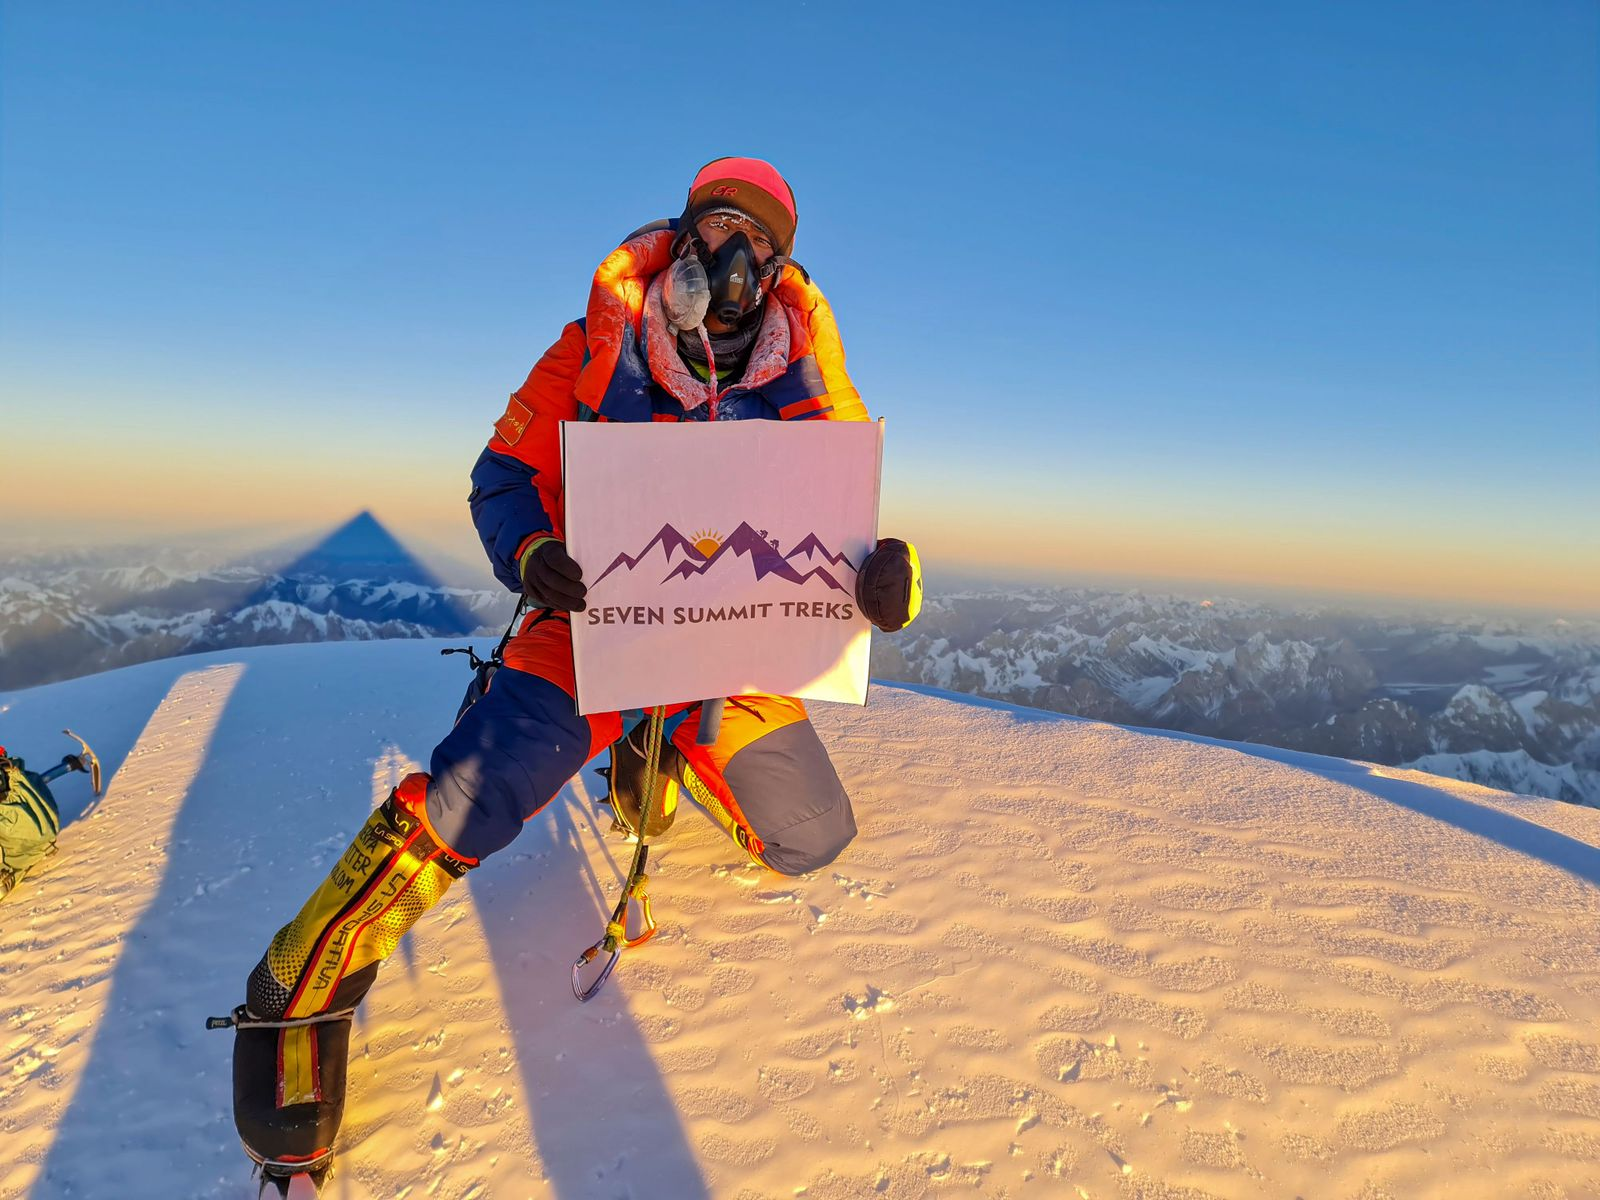 Nepalese team makes first successful winter ascent of K2, Zzz, Pakistan - 16 Jan 2021